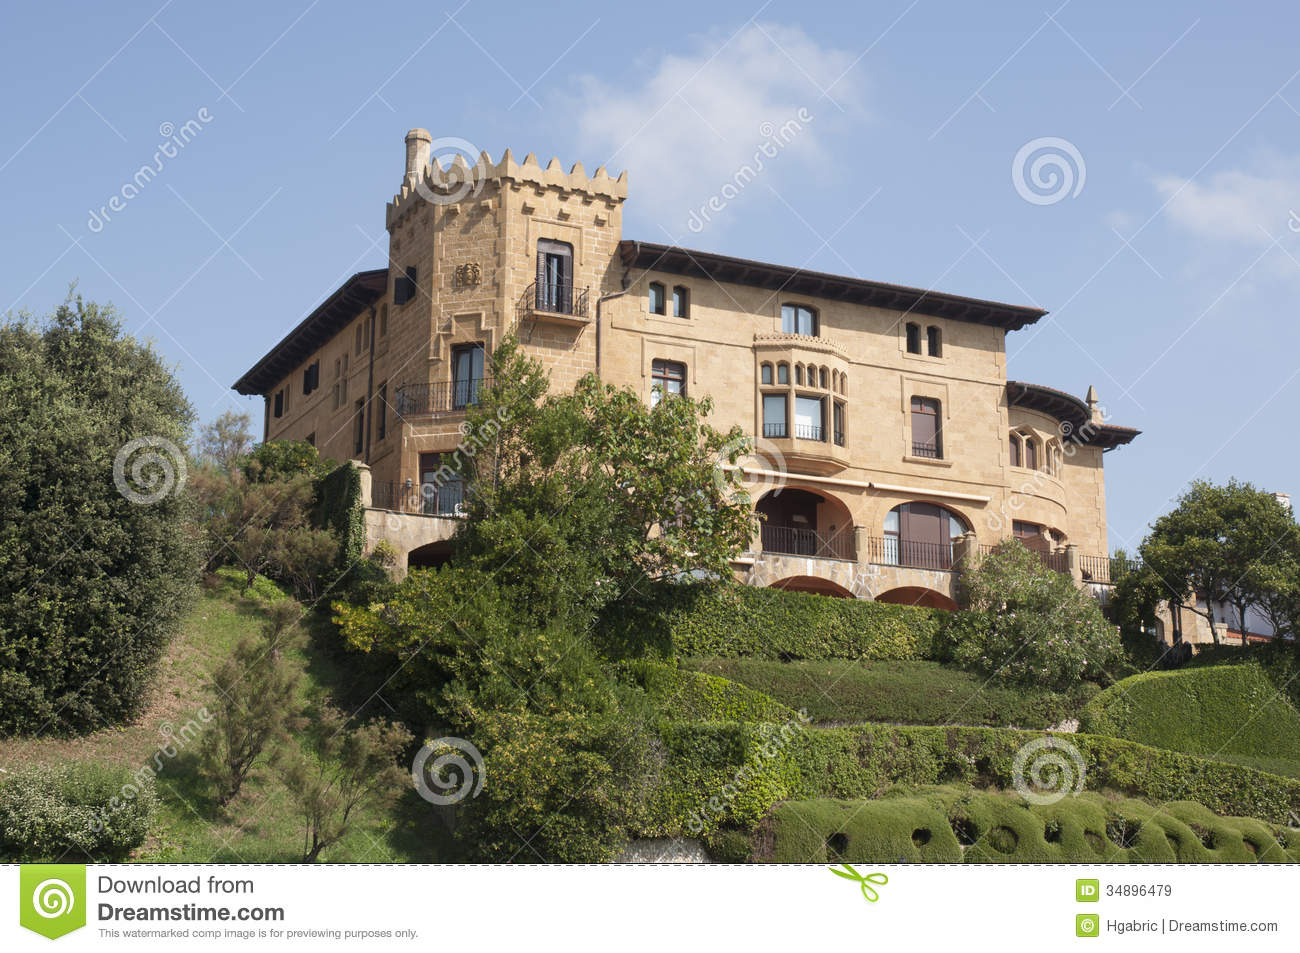 Castle look a like house in getxo bilbao spain royalty for Houses that look like castles